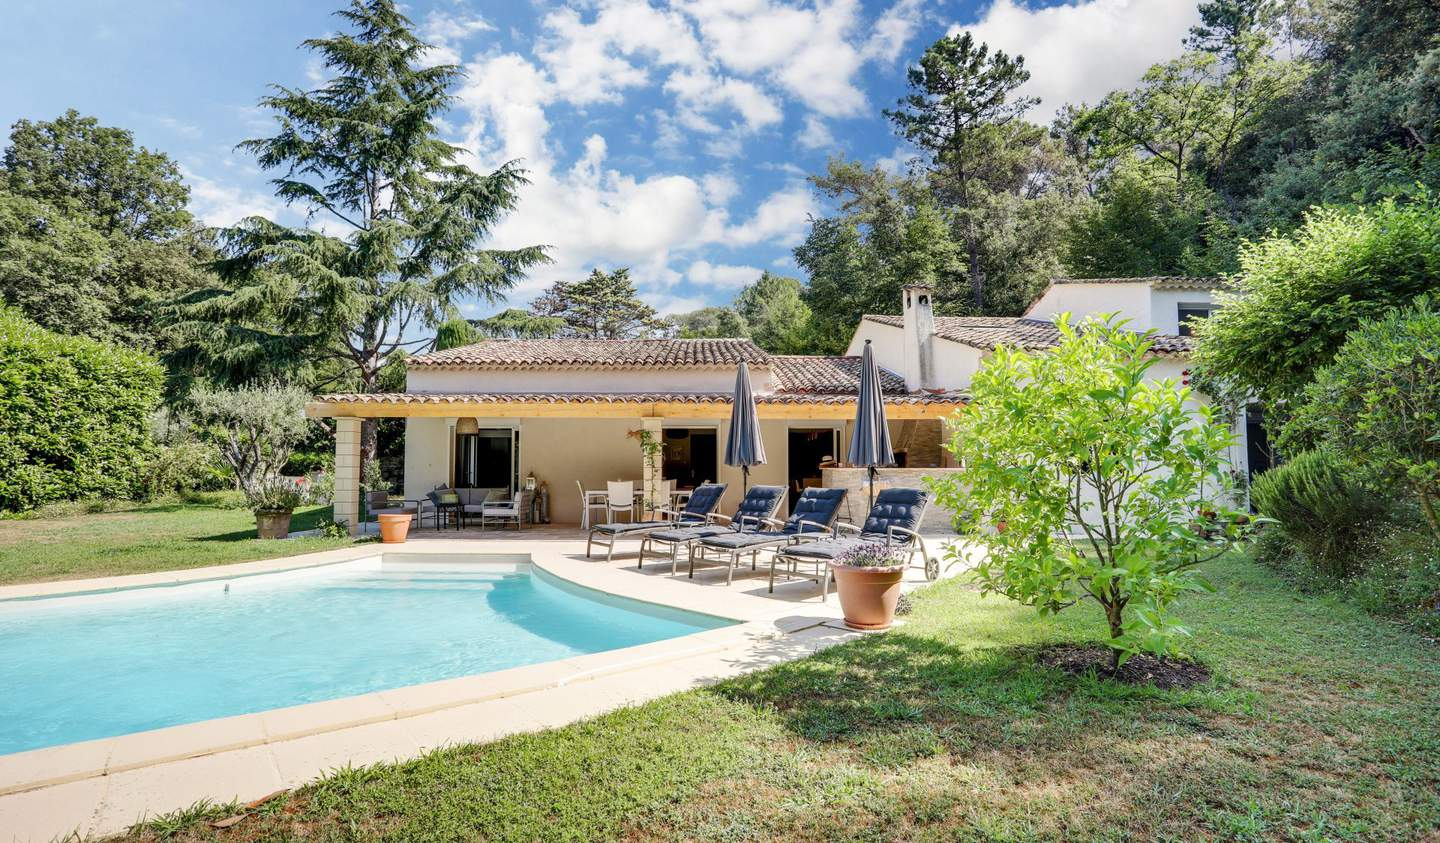 Villa with pool and garden Saint Paul de Vence